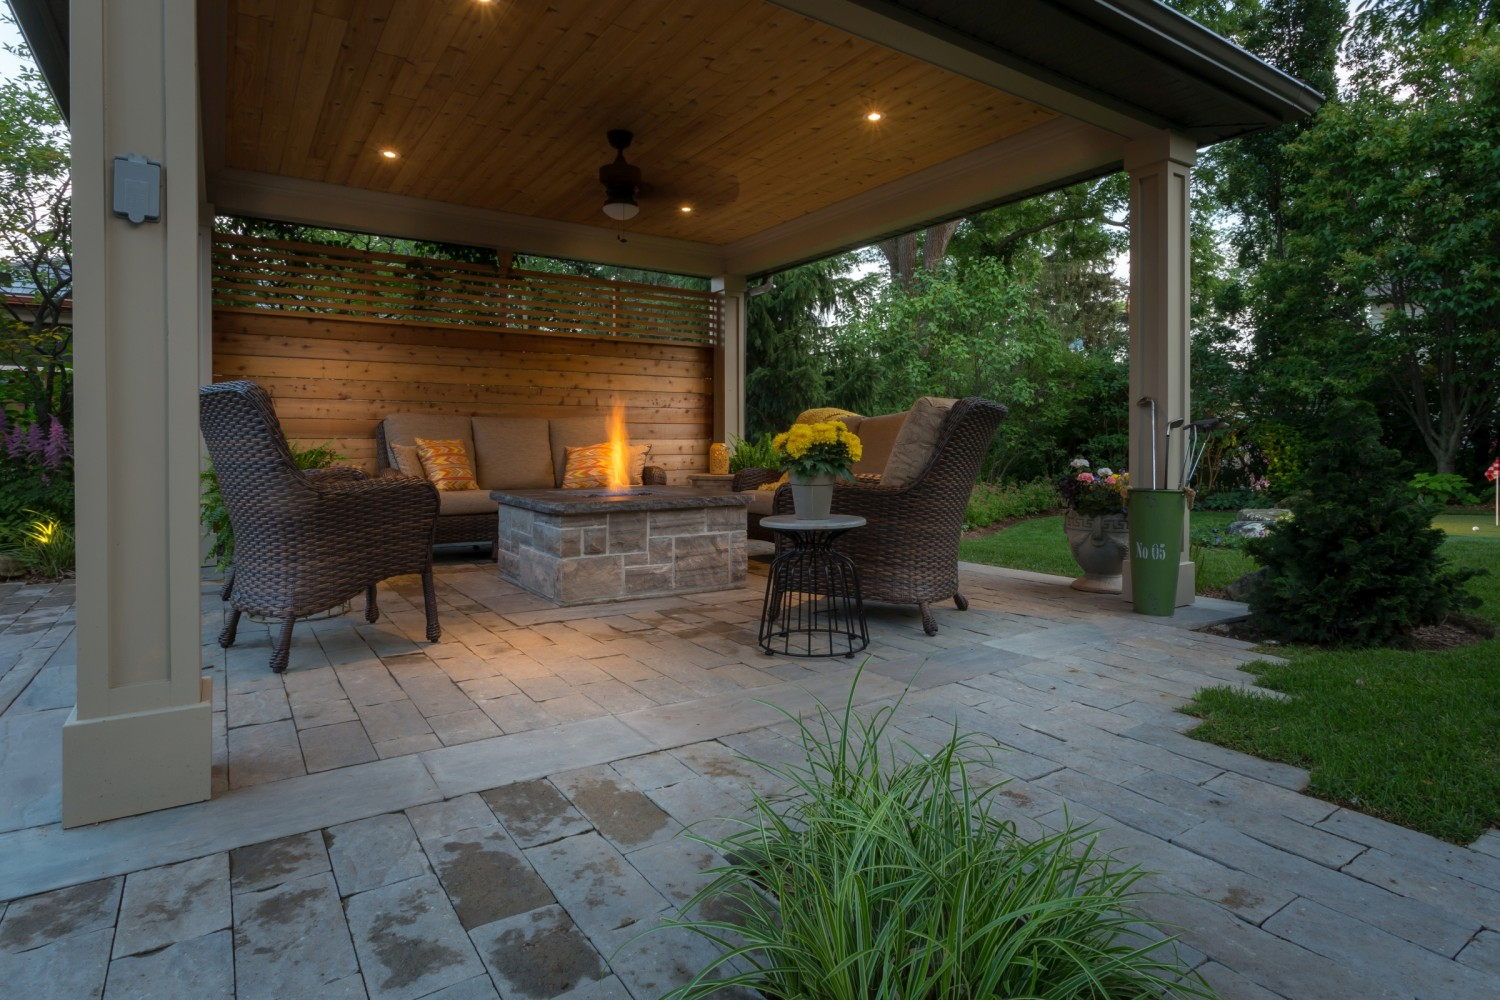 Patios  Oakville & Burlington Landscaping. Deck To Patio Designs Pictures. Hanamint Berkshire Patio Furniture Prices. Metal Patio Furniture Johannesburg. Building A Roof Over Your Patio. Outdoor Deck Furniture Lowes. Home And Patio Victoria Bc. Gardman Patio Set Cover Small. Concrete Patio Ideas And Pictures